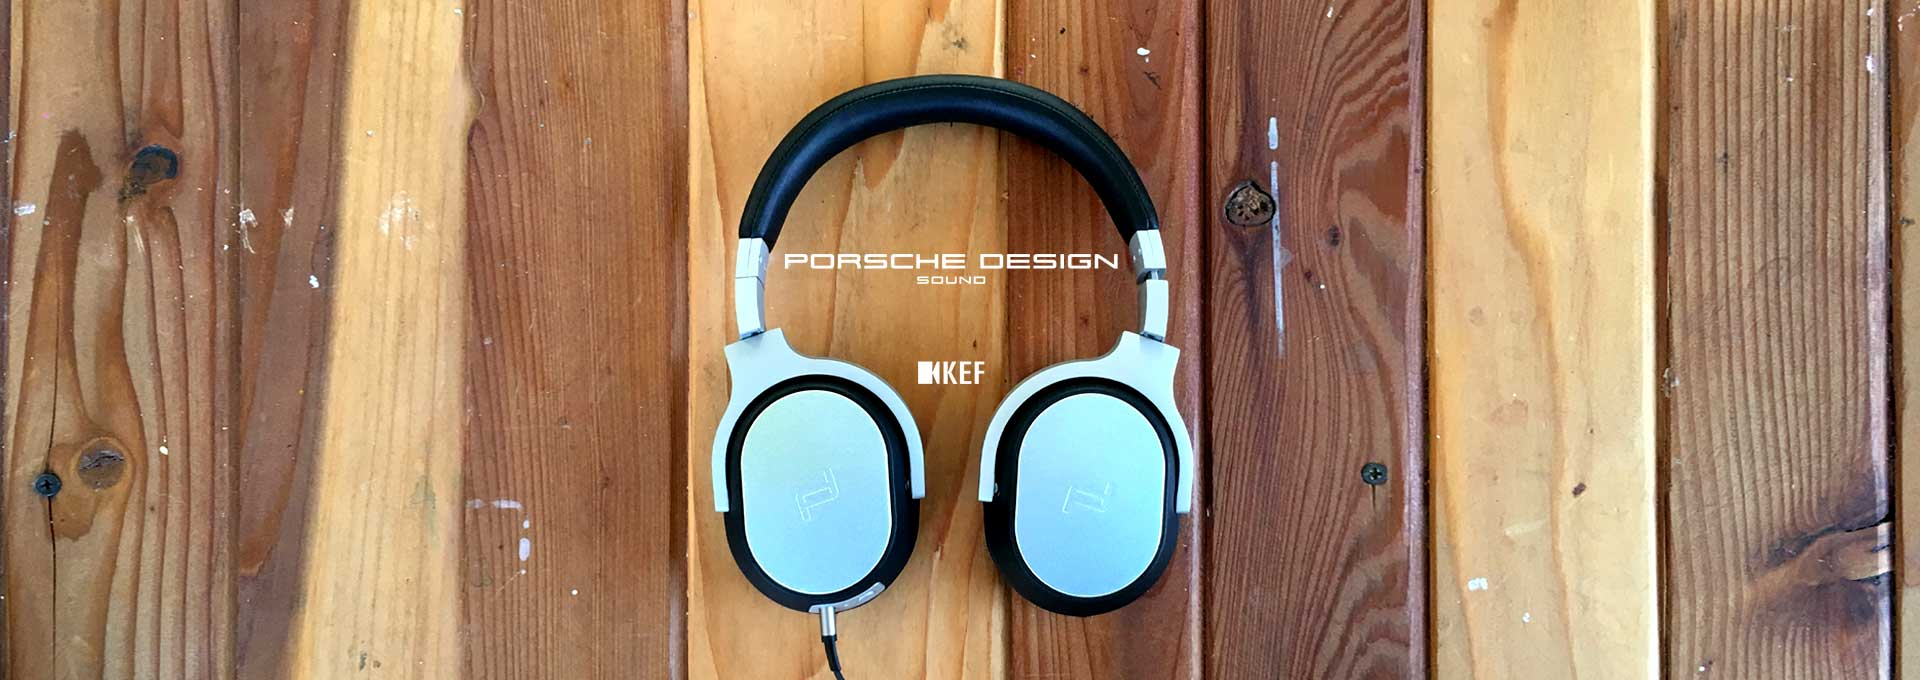 Porsche Design Space One Review | These Noise-Cancelling Headphones Sound Good, but Aren't the Comfiest Fit